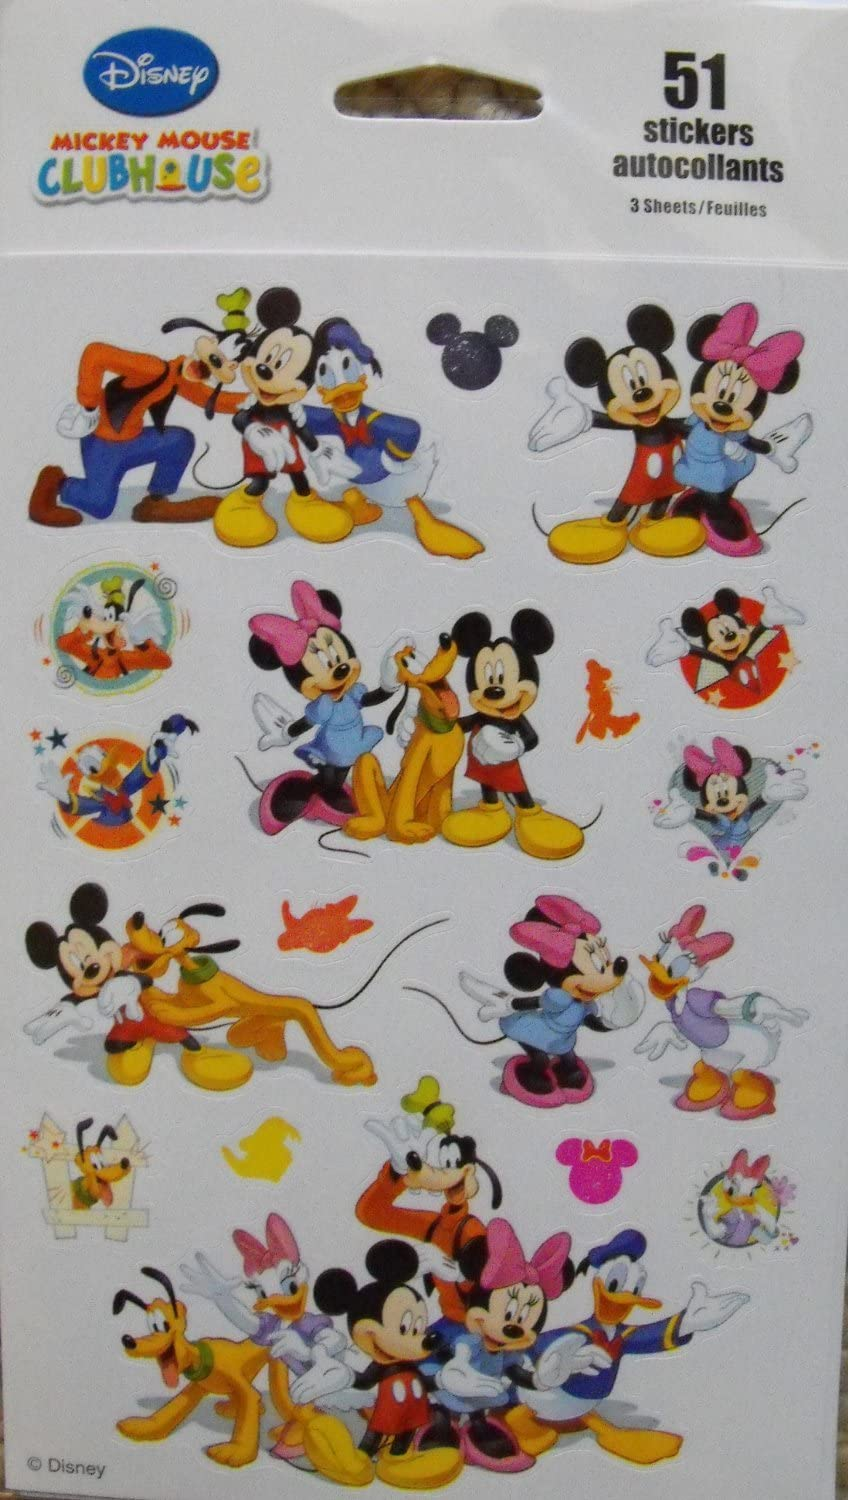 Disney Mickey Mouse Clubhouse 51 Stickers